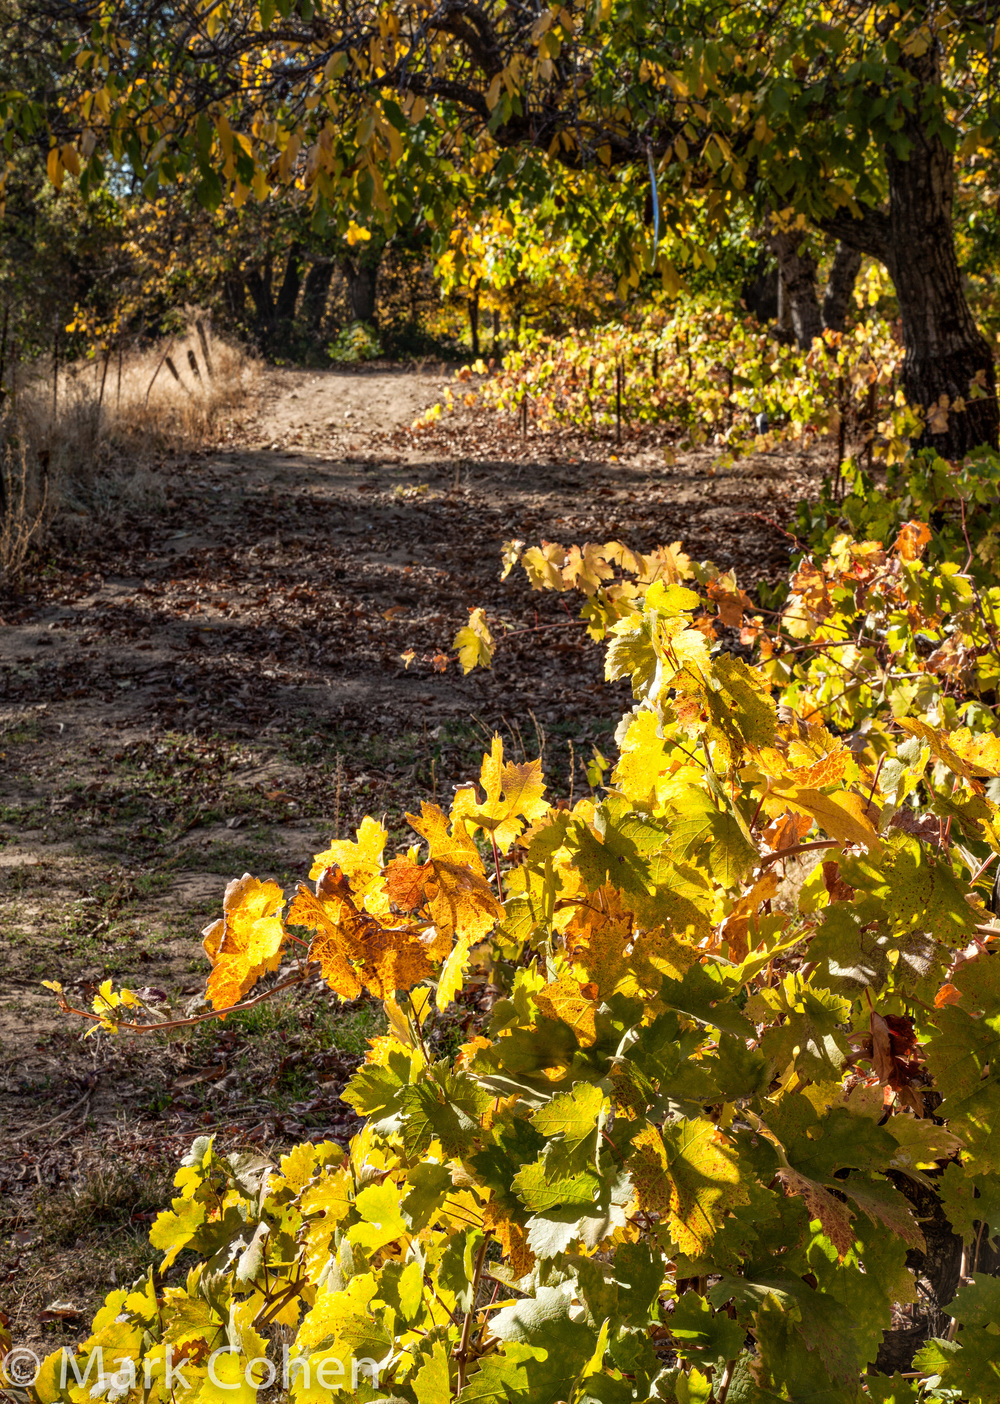 Grapevines and road, Amador County, 2013